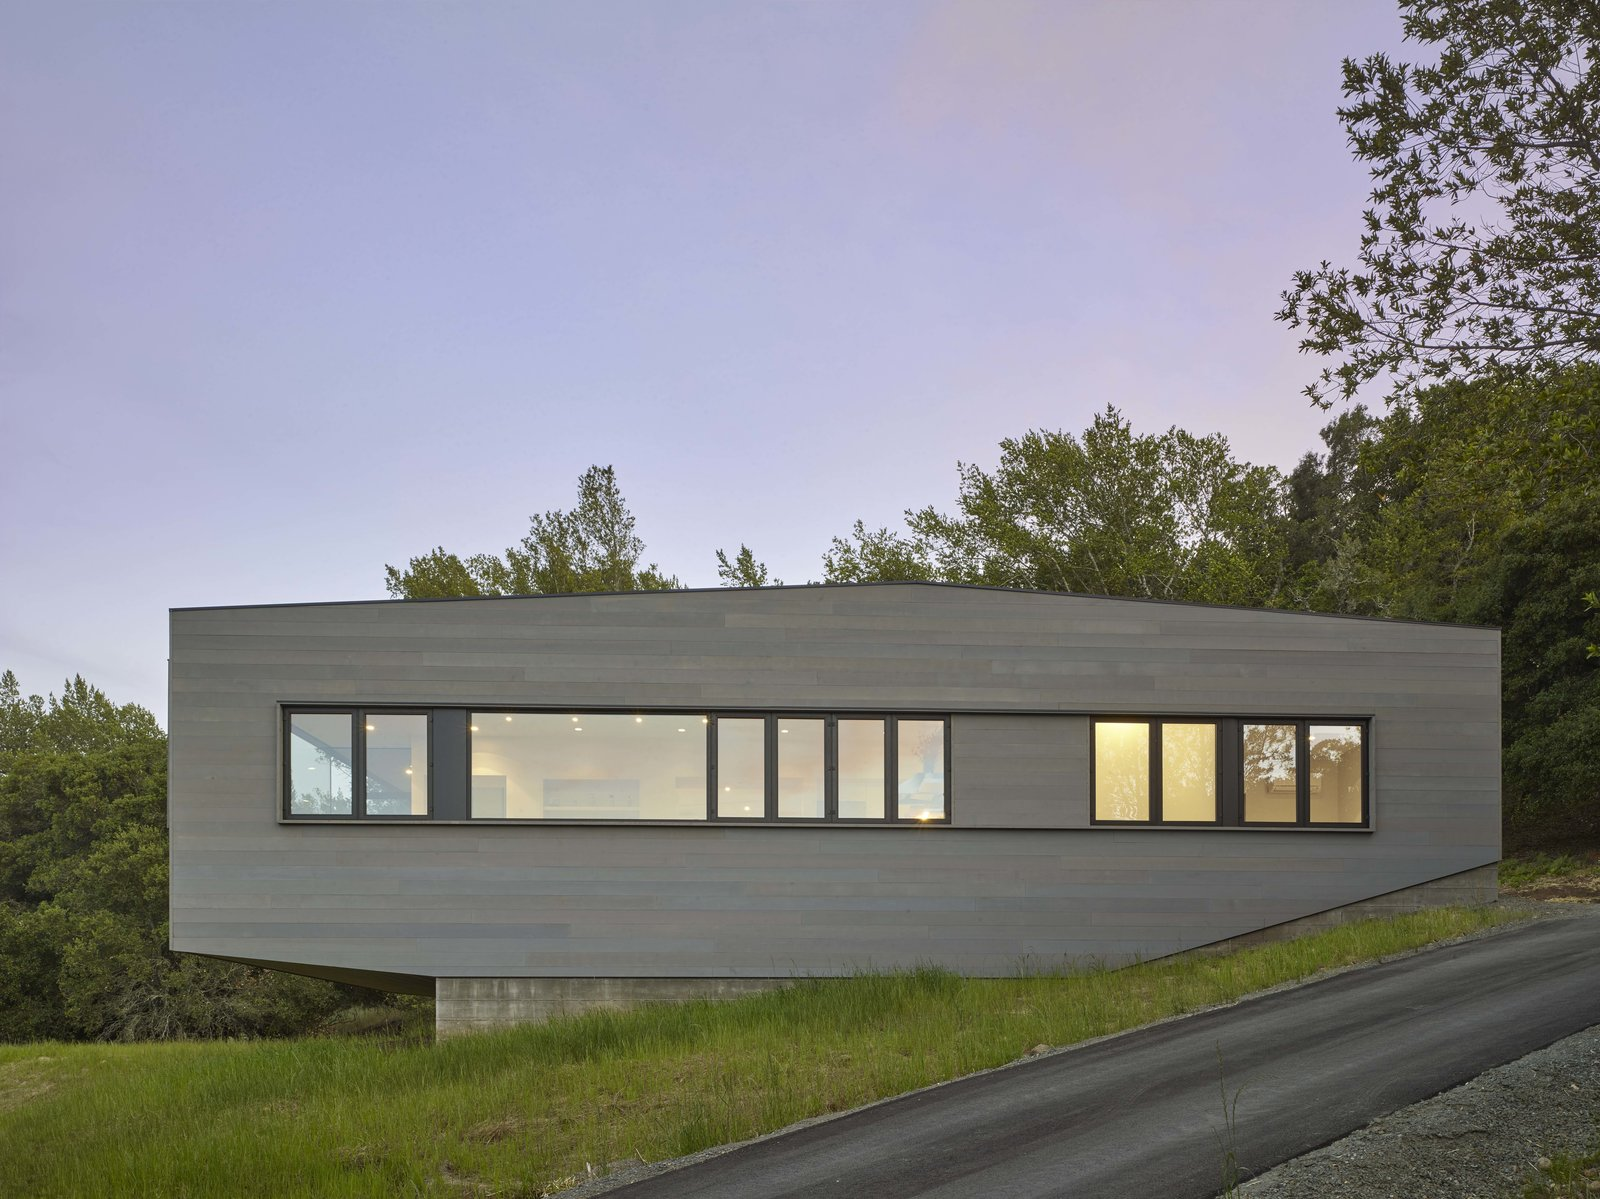 Exterior, Wood Siding Material, and House Building Type Side Elevation  Photos from Box on the Rock